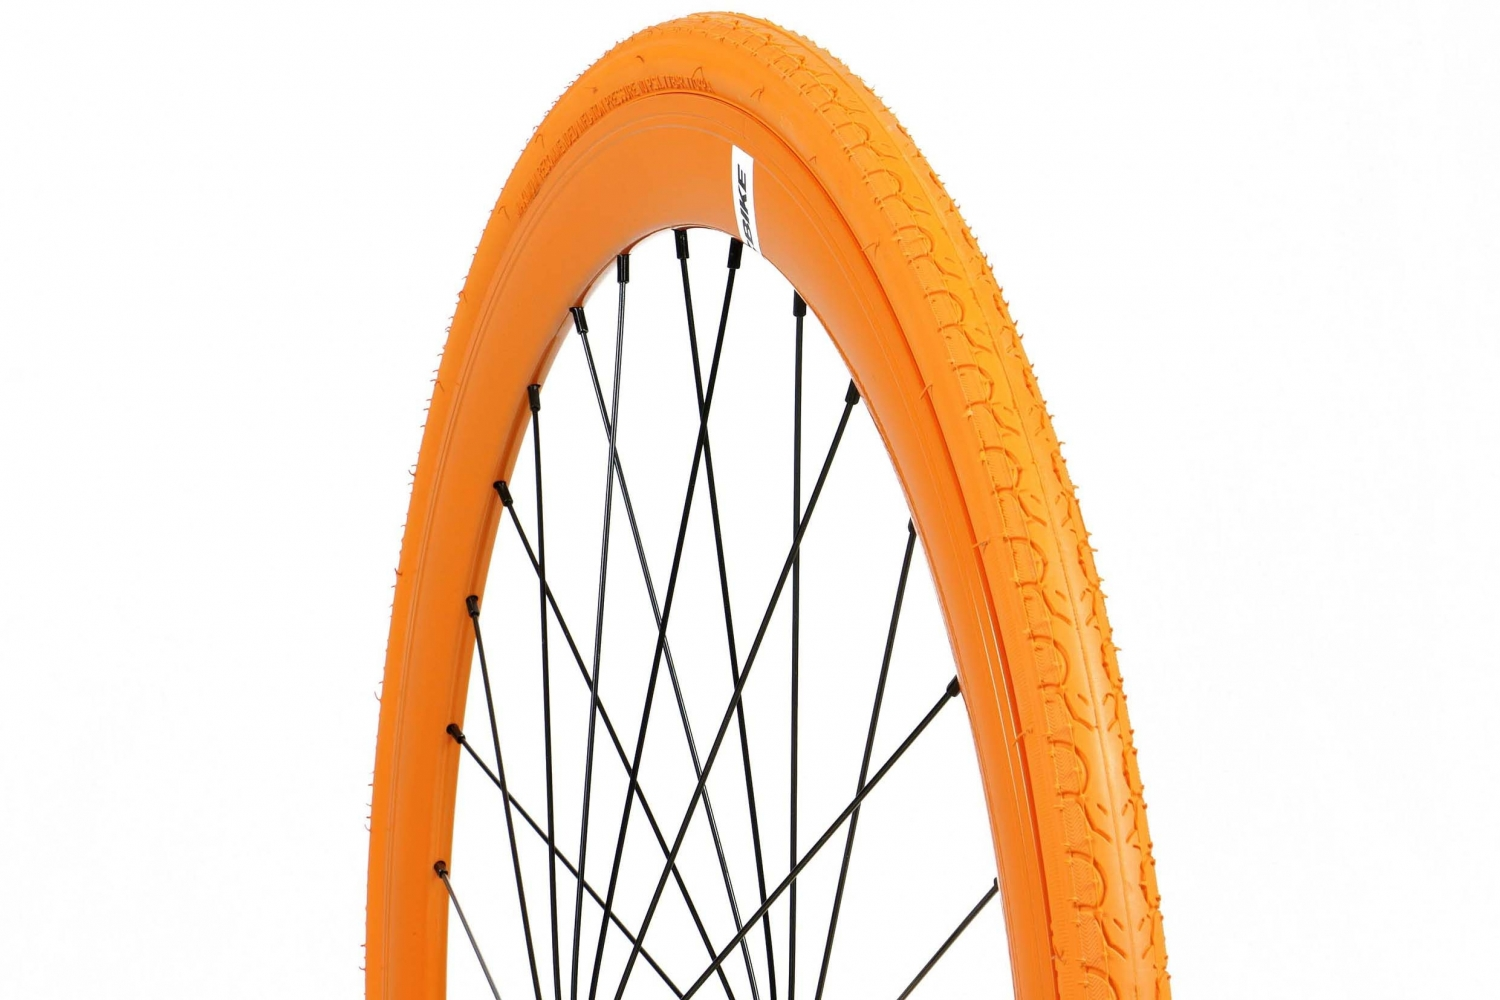 Kenda 700X25C Colored Tyre